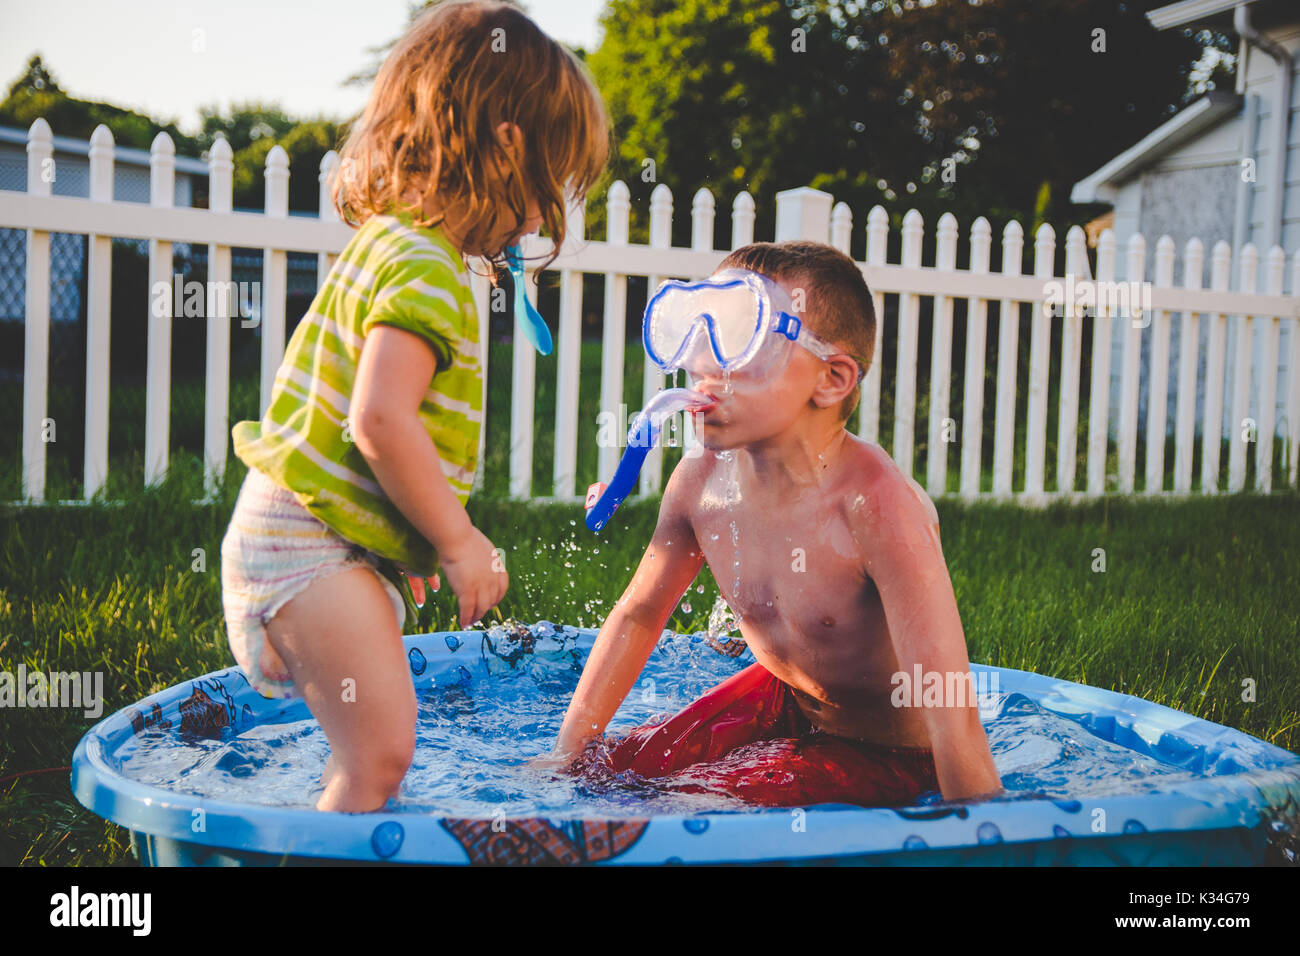 A boy wearing a scuba mask looks at a little girl in a kids swimming pool - Stock Image